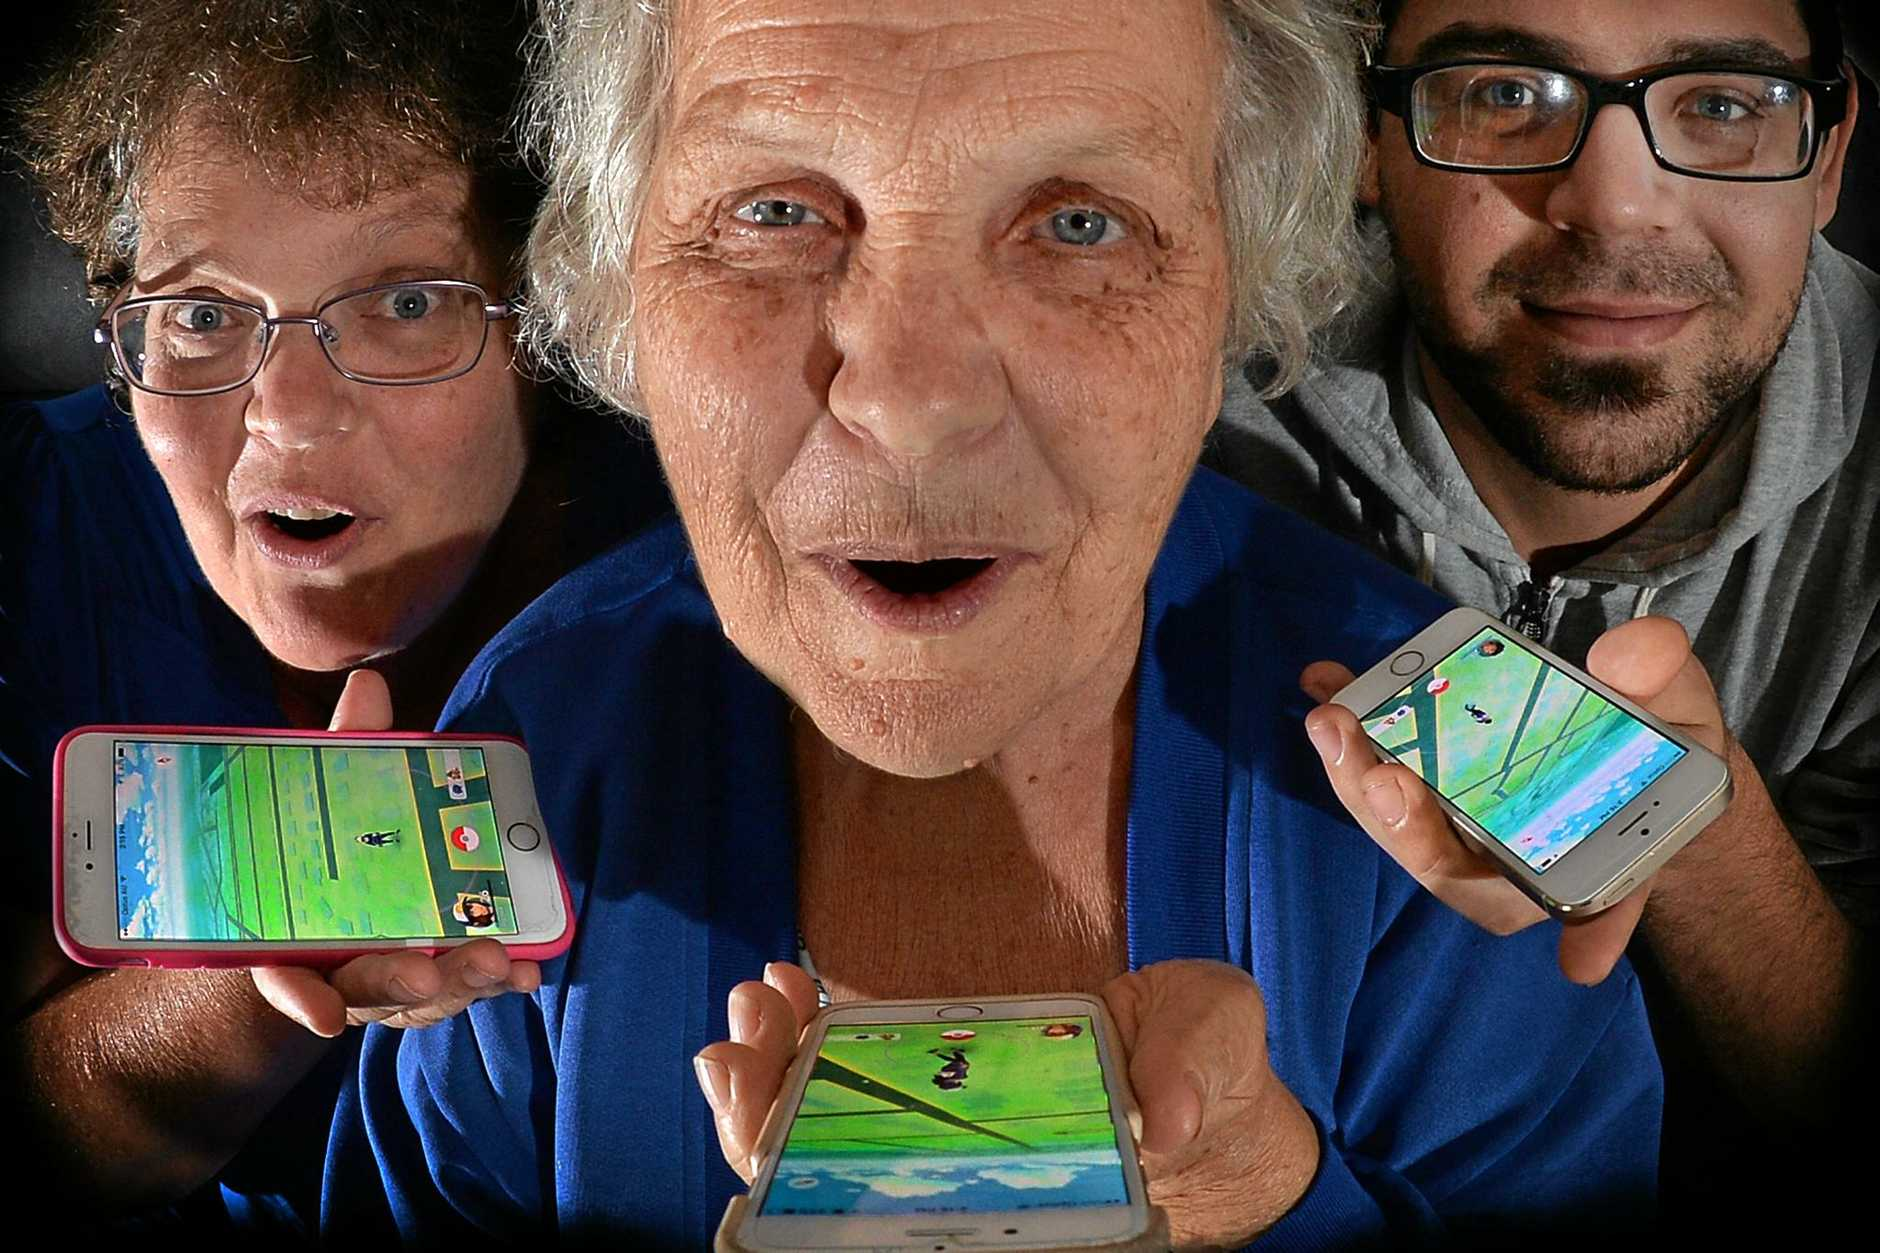 Three generations of Pokemon players Joy, Val at 78 years of age and Greg McKenzie.